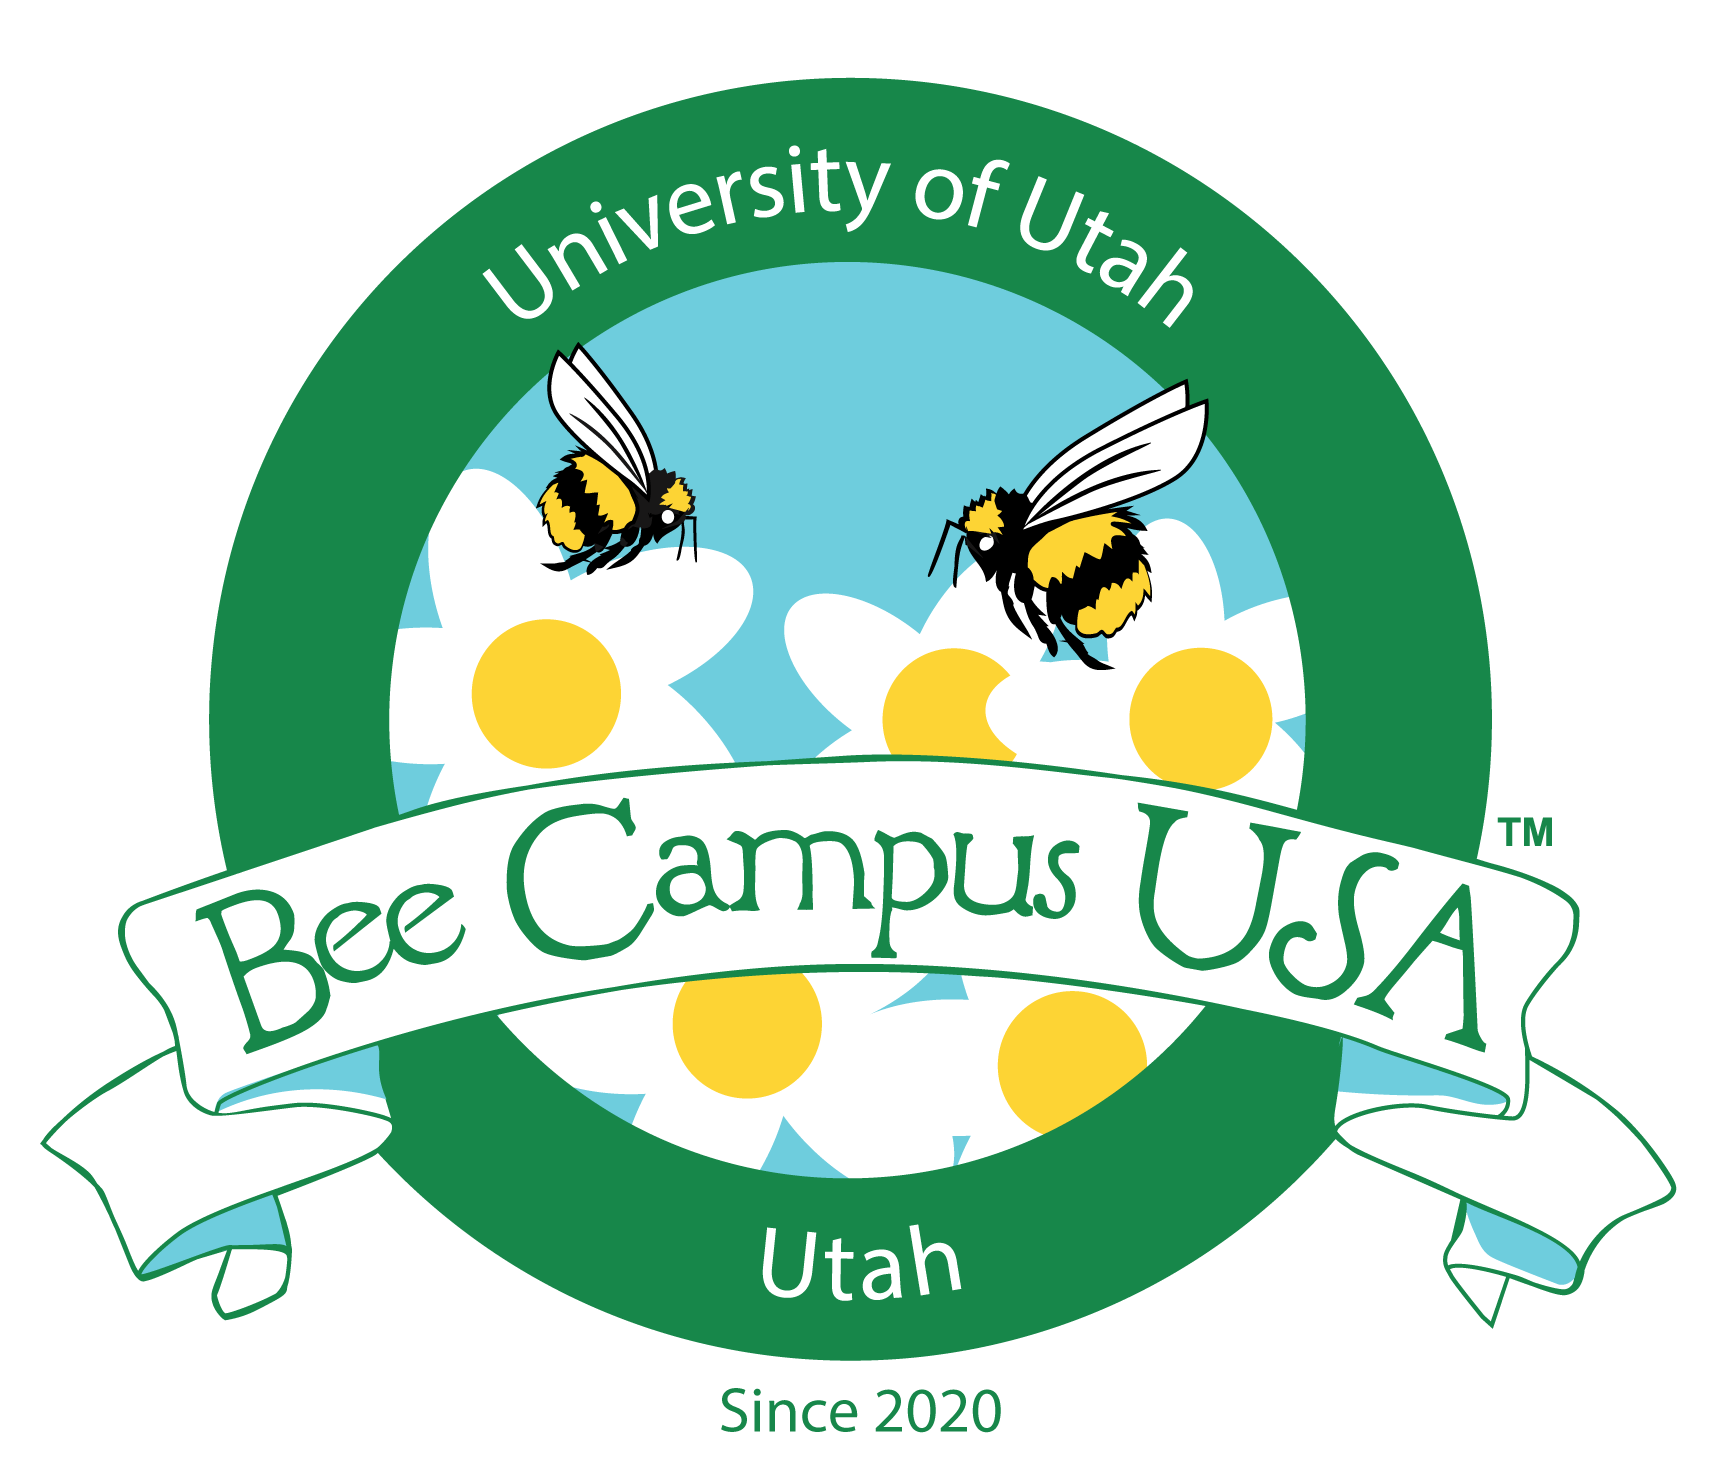 A graphic that has bumble bees on daisies that has Bee Campus USA.